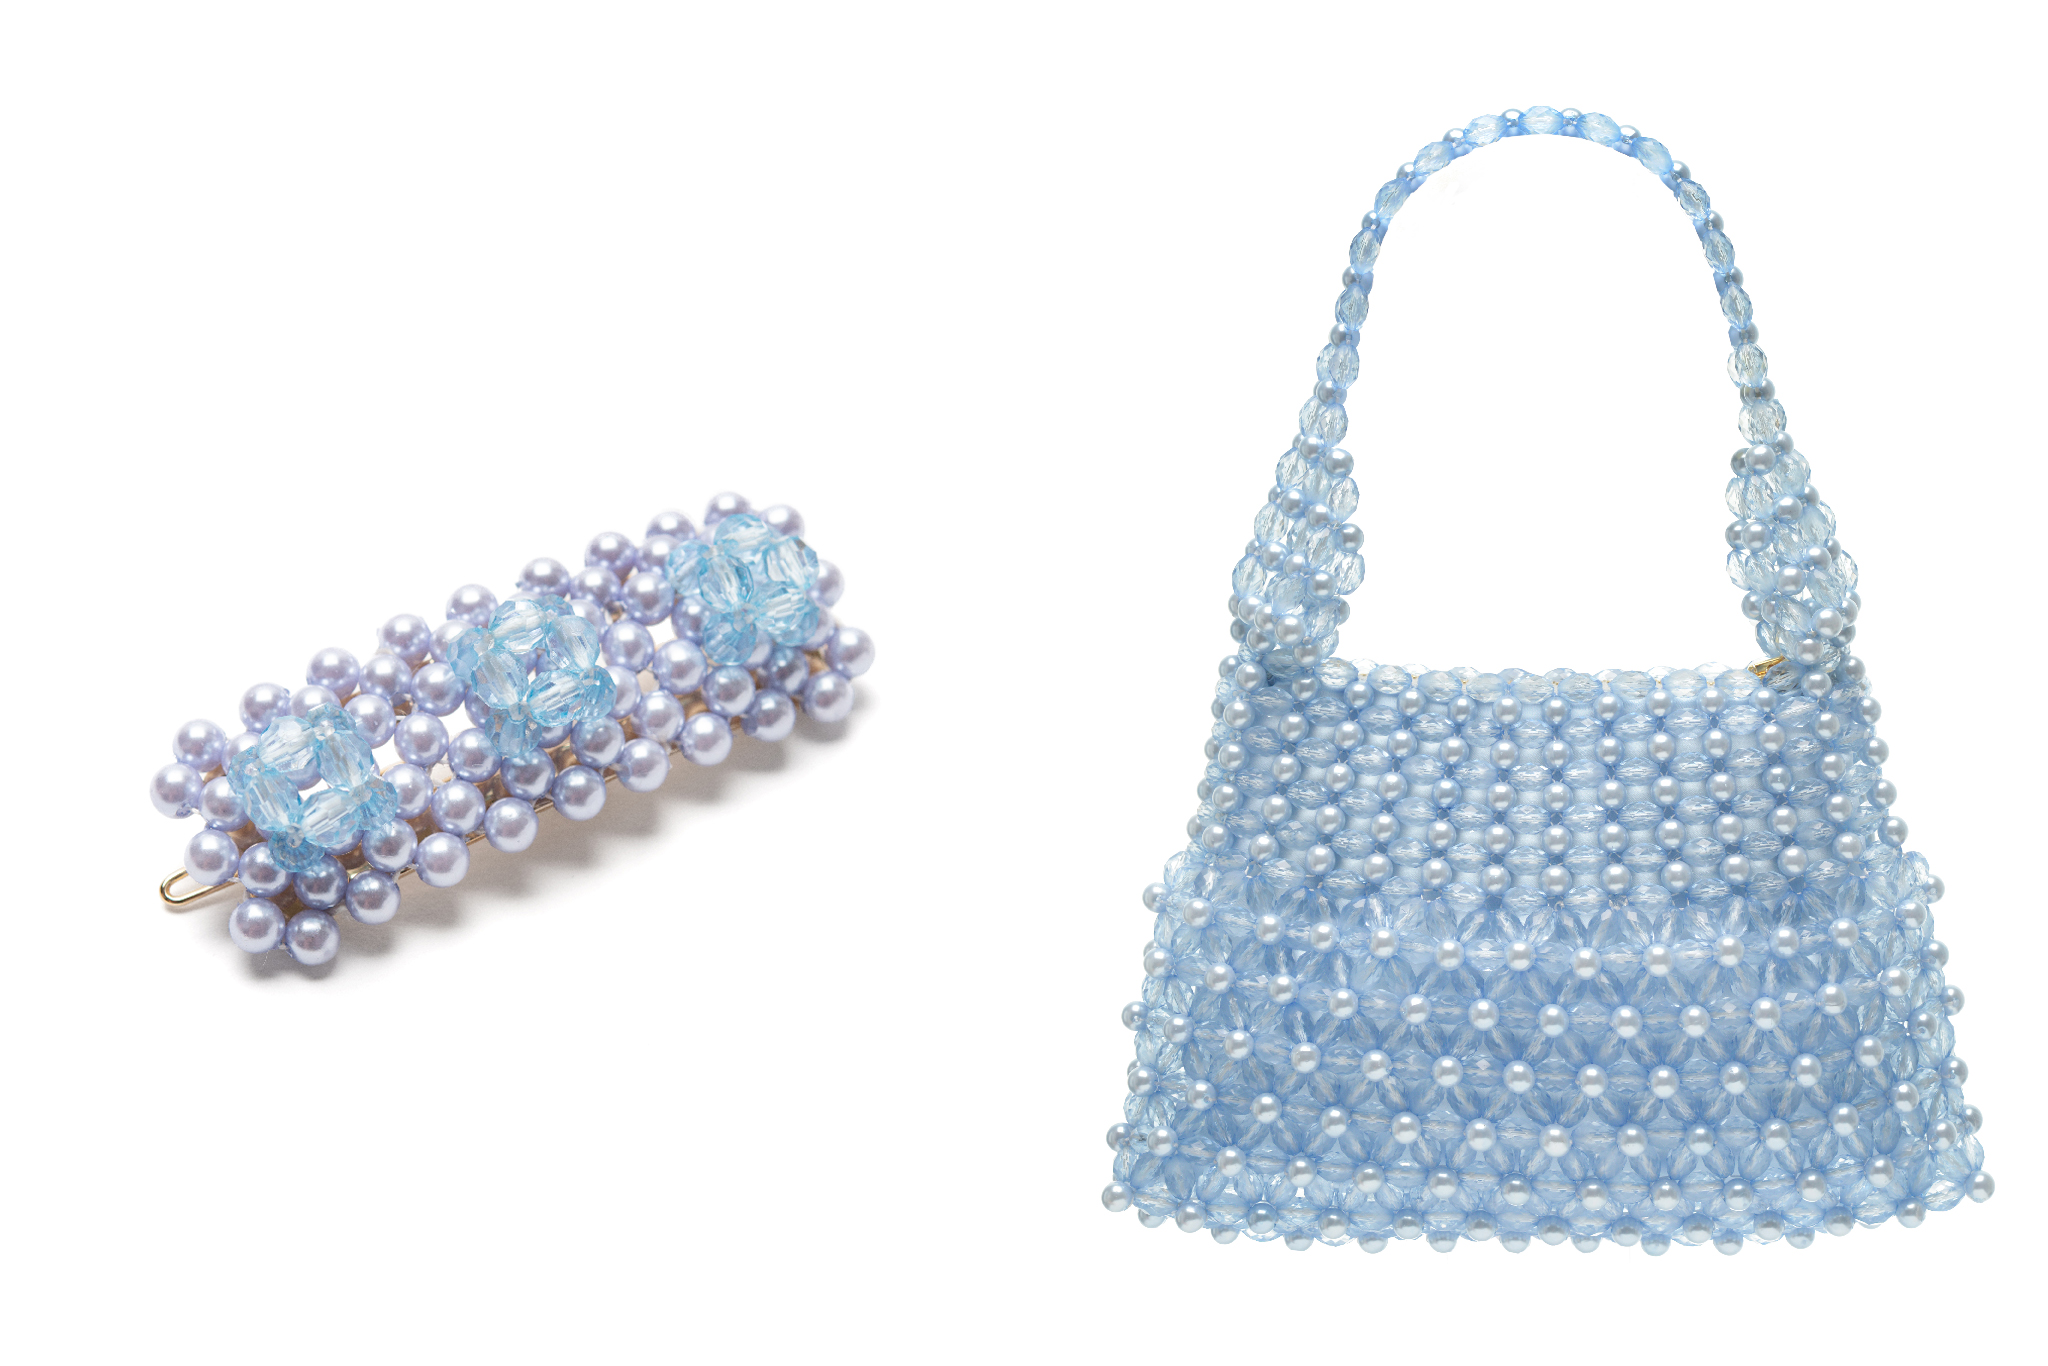 A hair clip and matching handbag by the English brand, Shrimps.